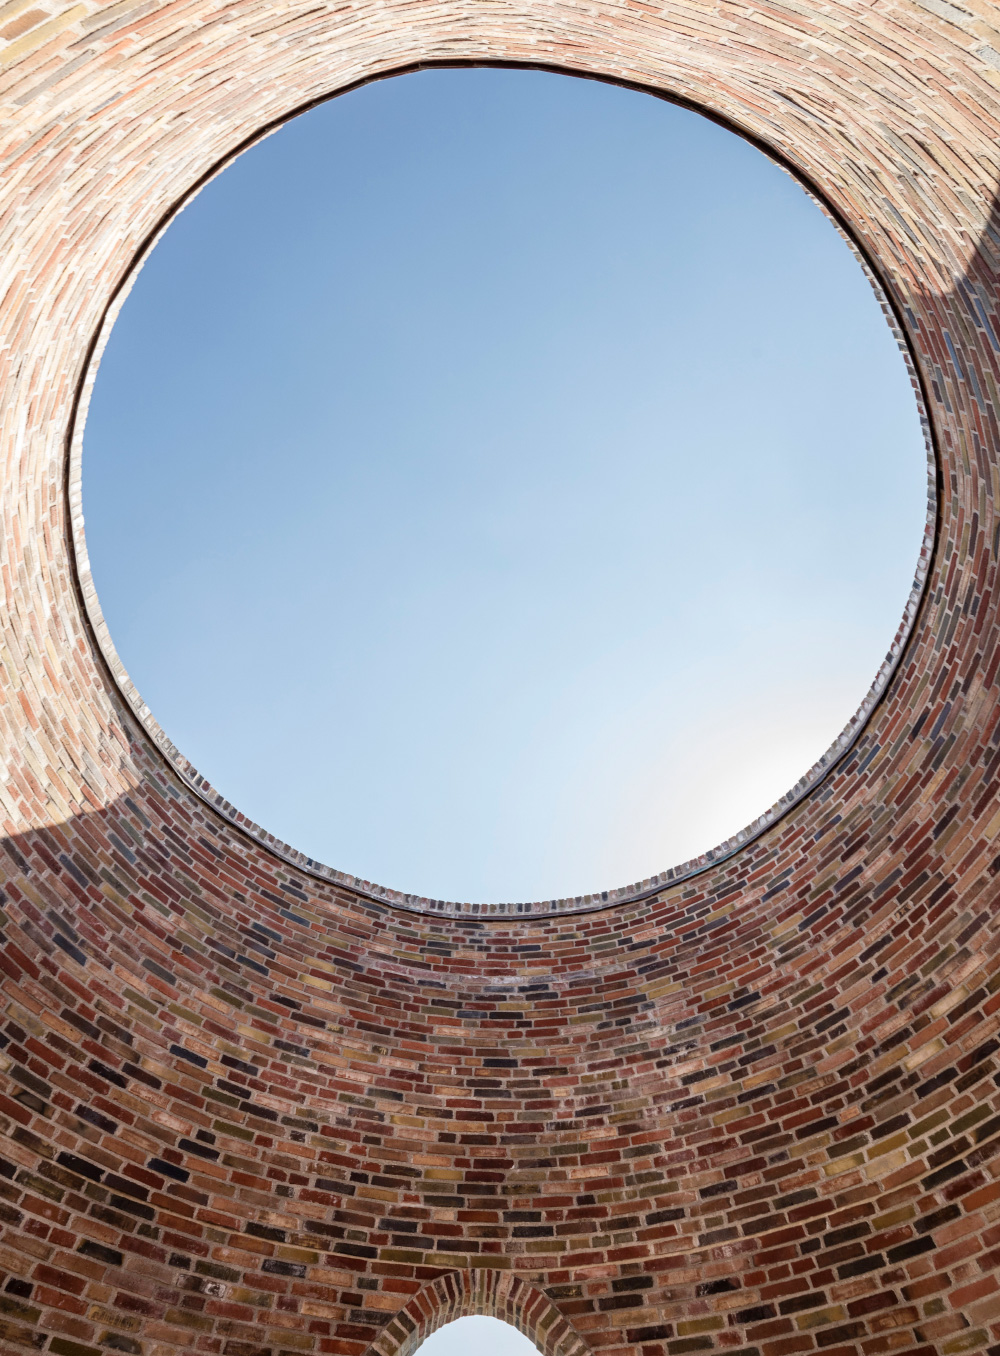 An oculus made of brick